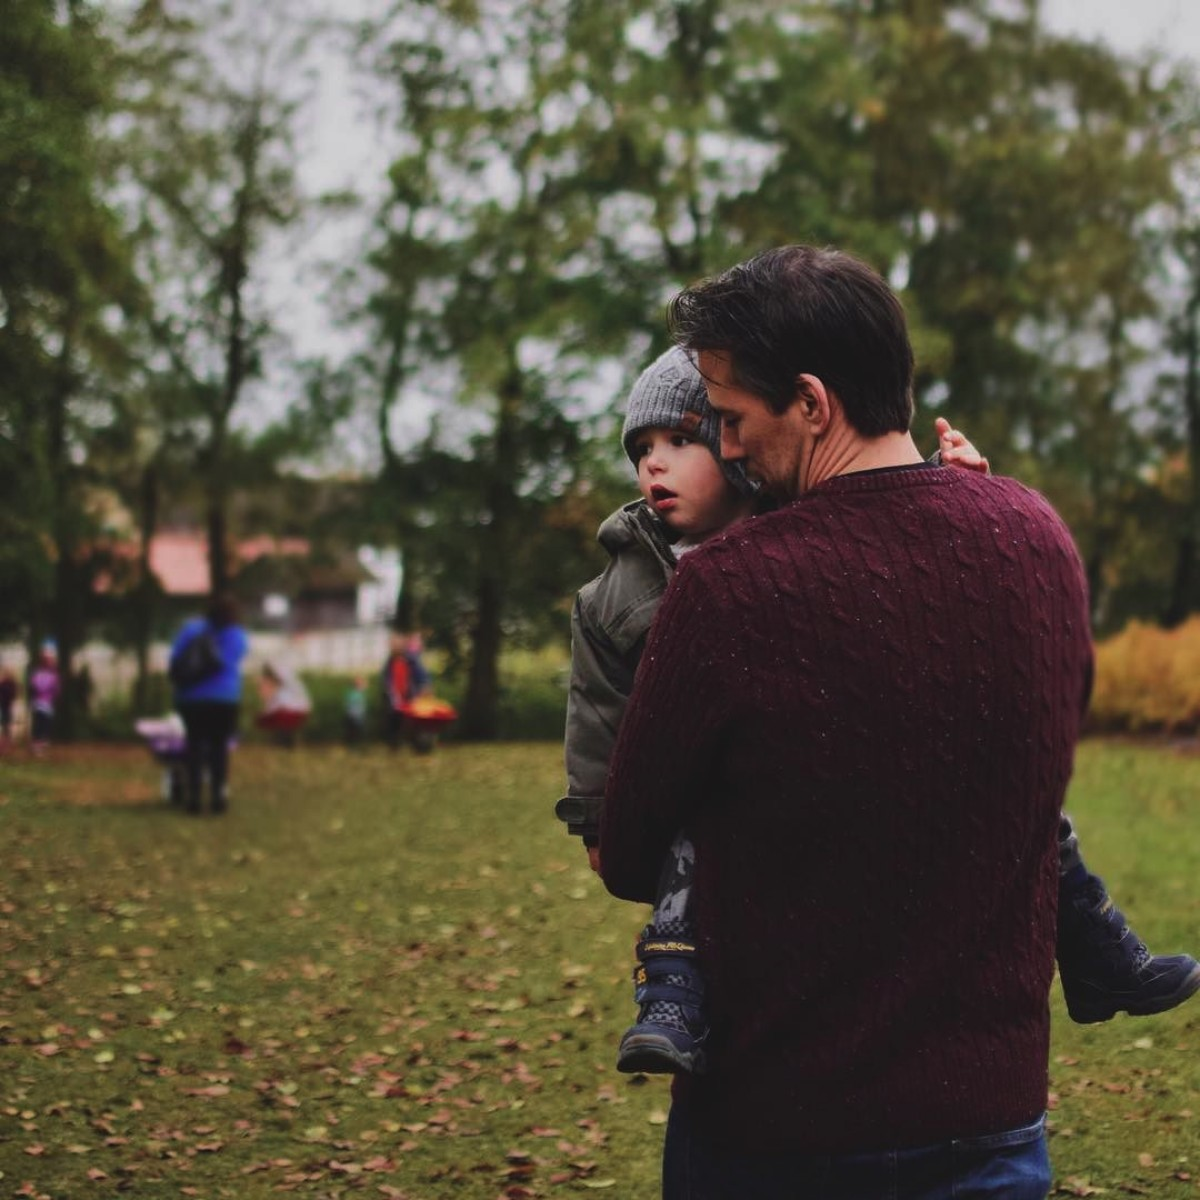 Our month in insta-snaps; October 2016 - Father carrying toddler son in Autumn setting at the pumpkin patch